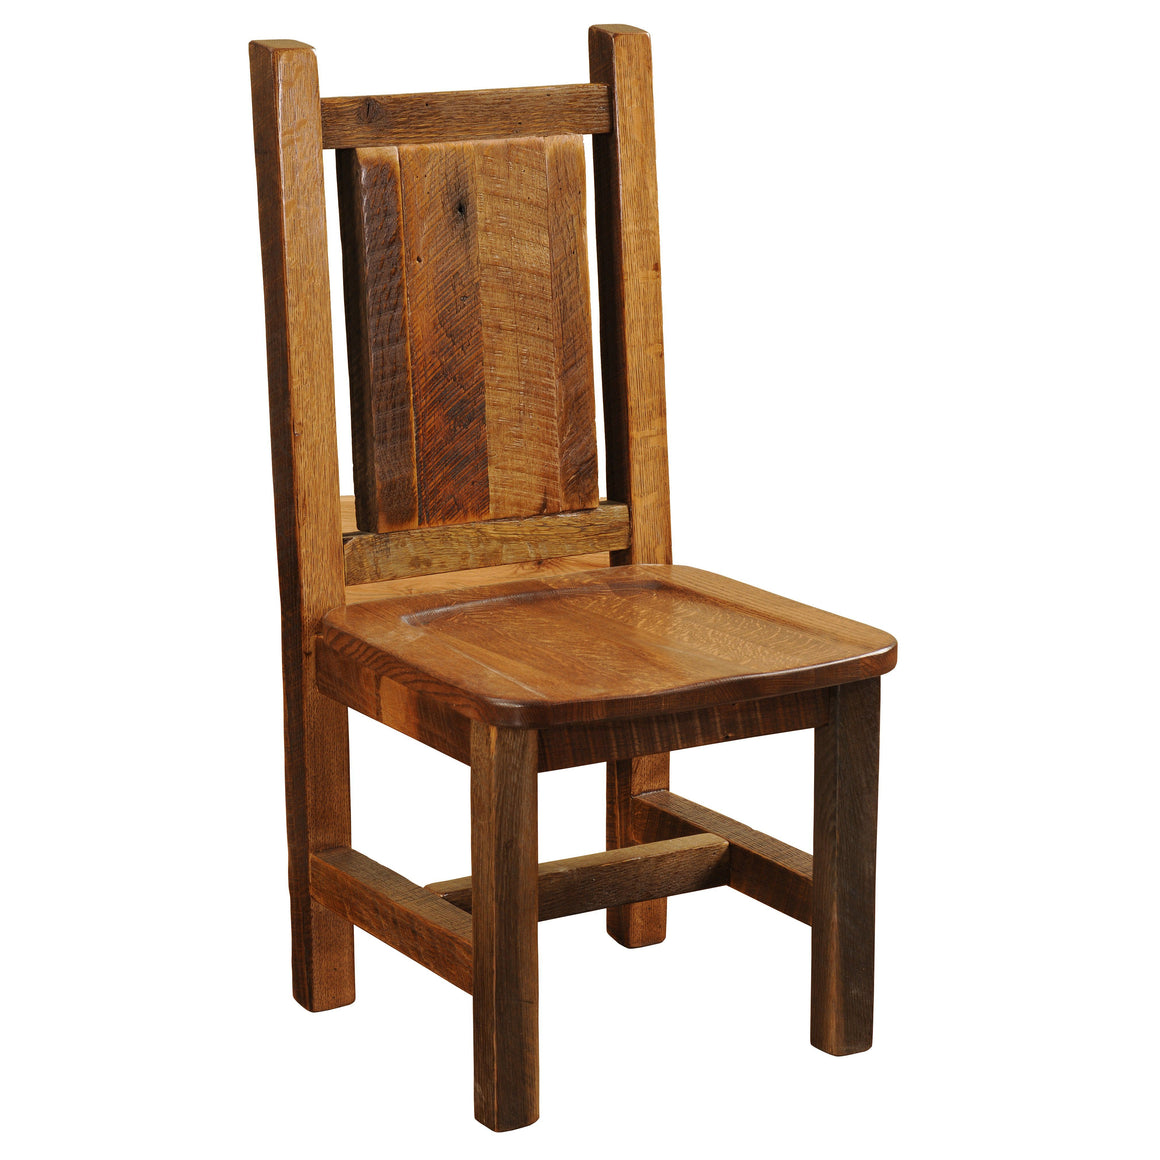 Barnwood Artisan Dining Side Chair -  Antique Oak Seat - Rustic Deco Incorporated